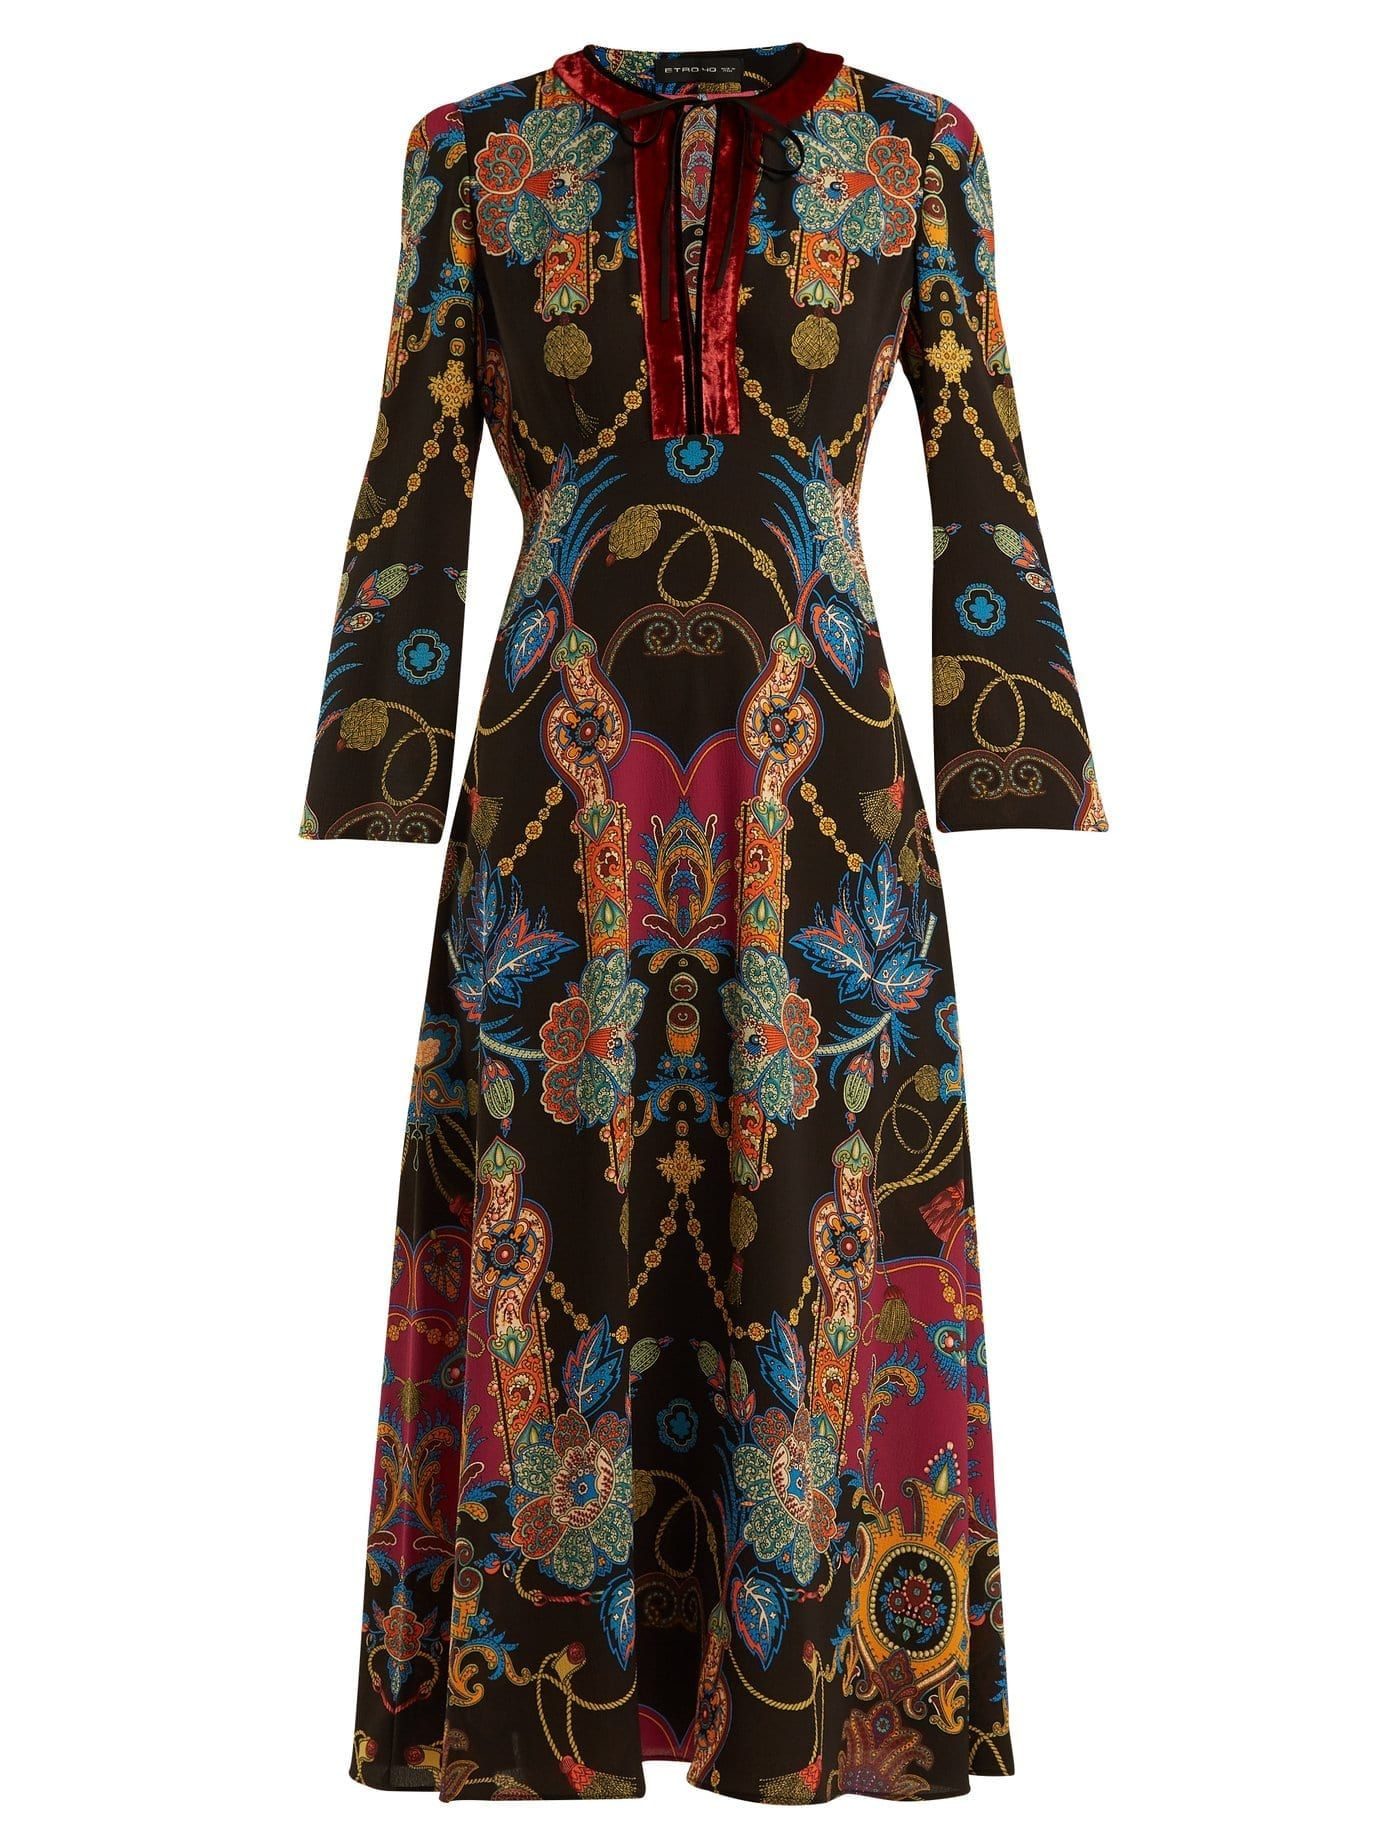 ed7adebab4 Banana Republic Womens Floral Tie-Neck Maxi Shirtdress Black | Products in  2019 | Dresses, Maxi dress with sleeves, Long shirt dress